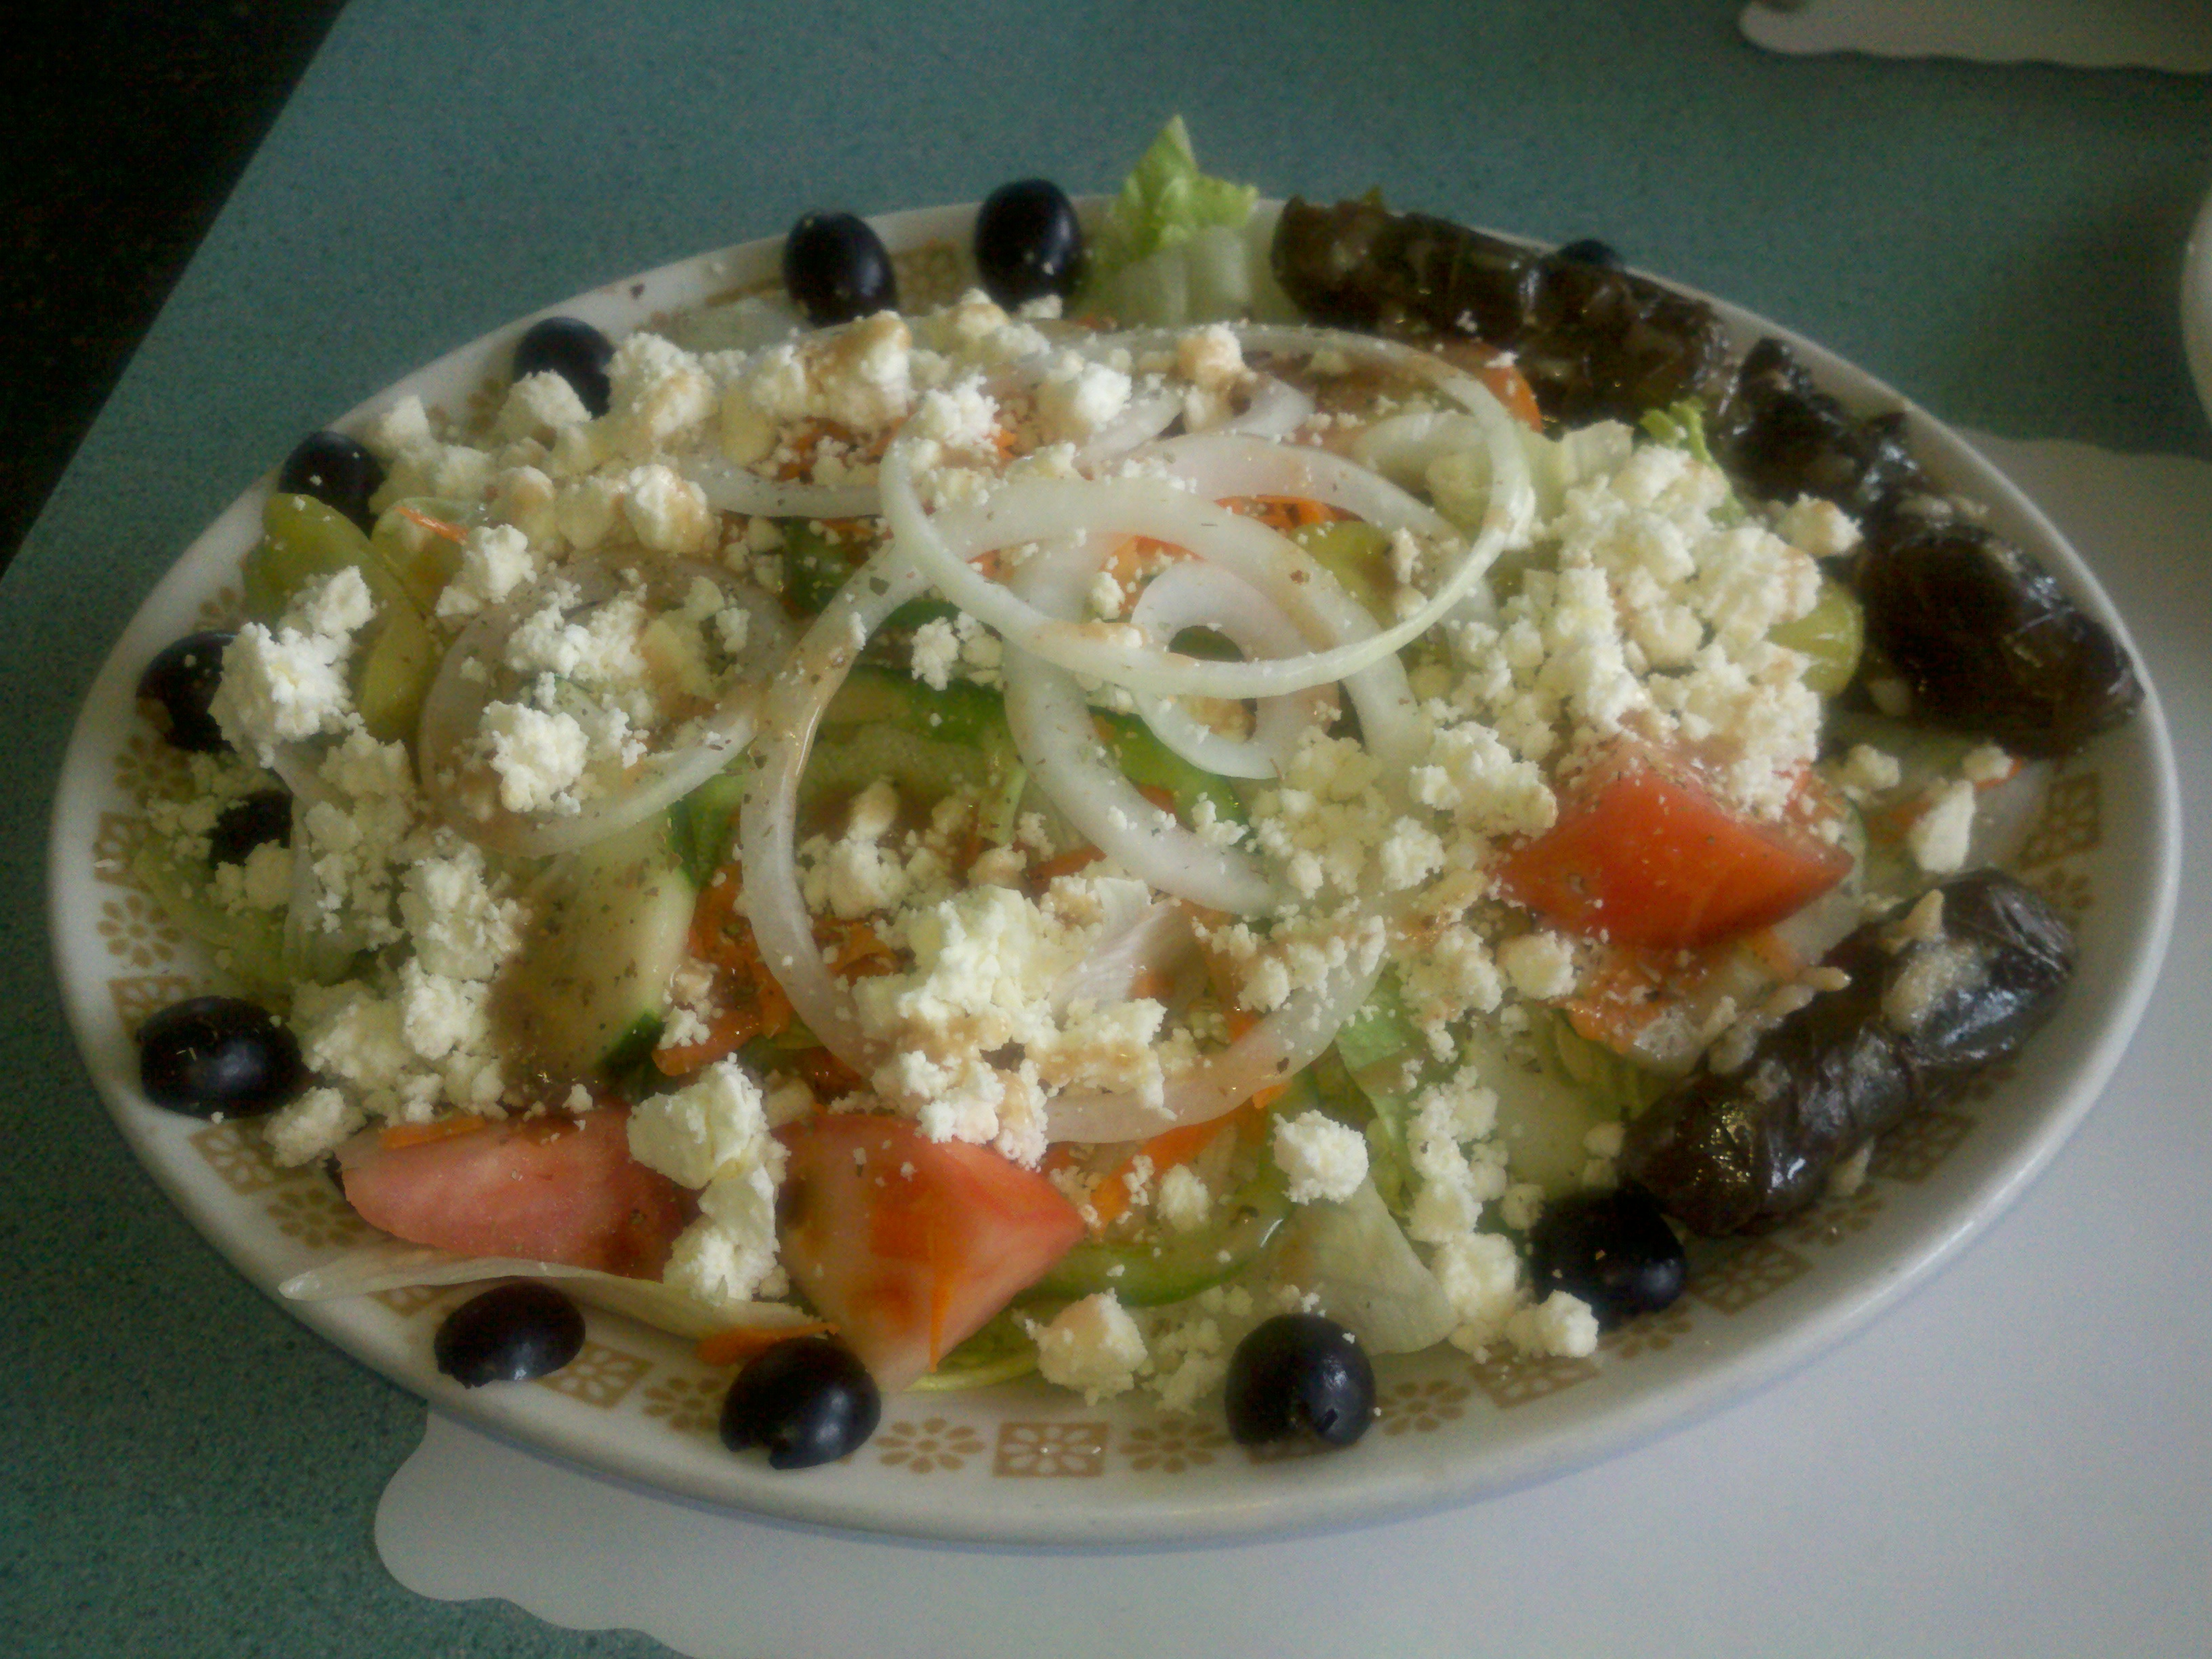 Olympia Diner, New Britain, CT :: Greek Salad with Stuffed Grape Leaves